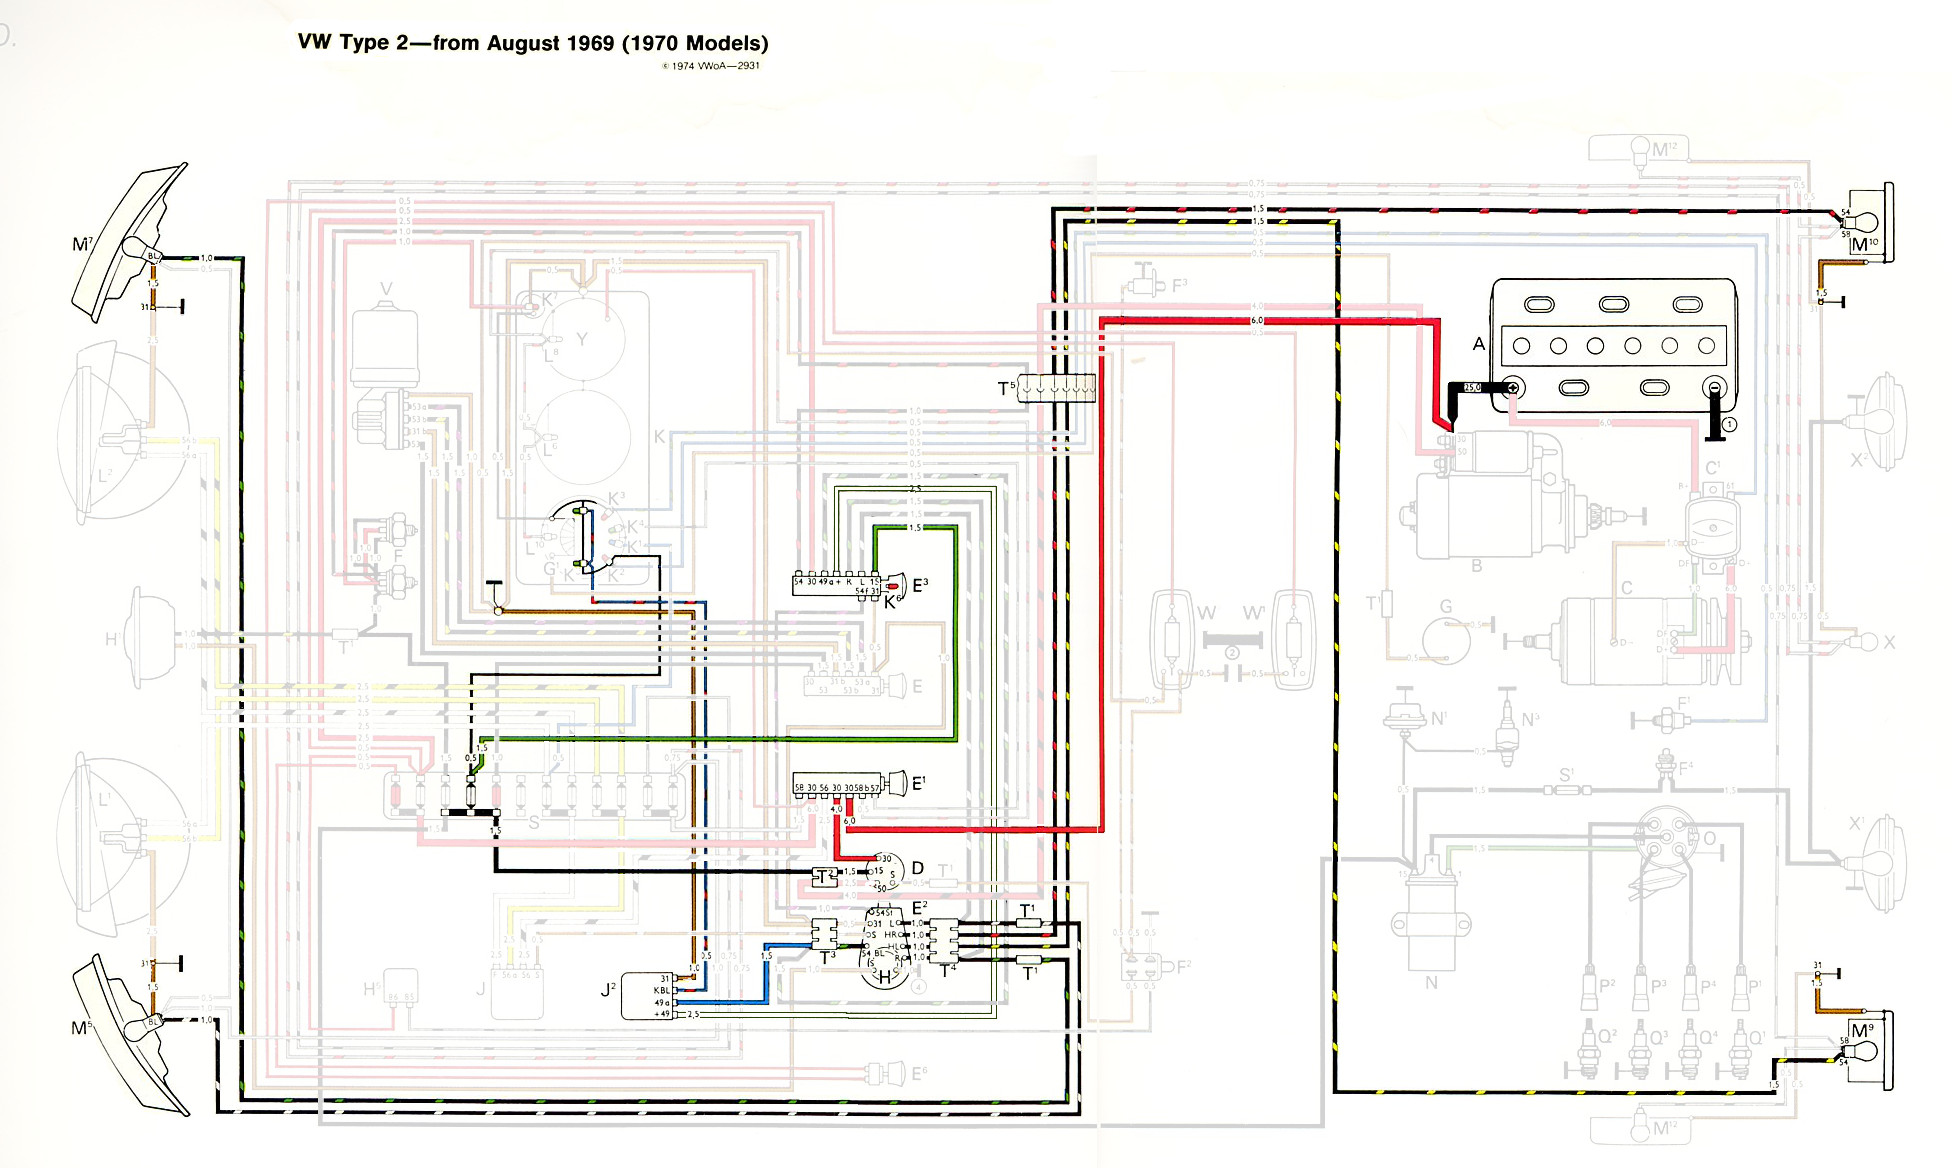 1970bus_signals thesamba com type 2 wiring diagrams 1970 vw beetle wiring diagram at edmiracle.co